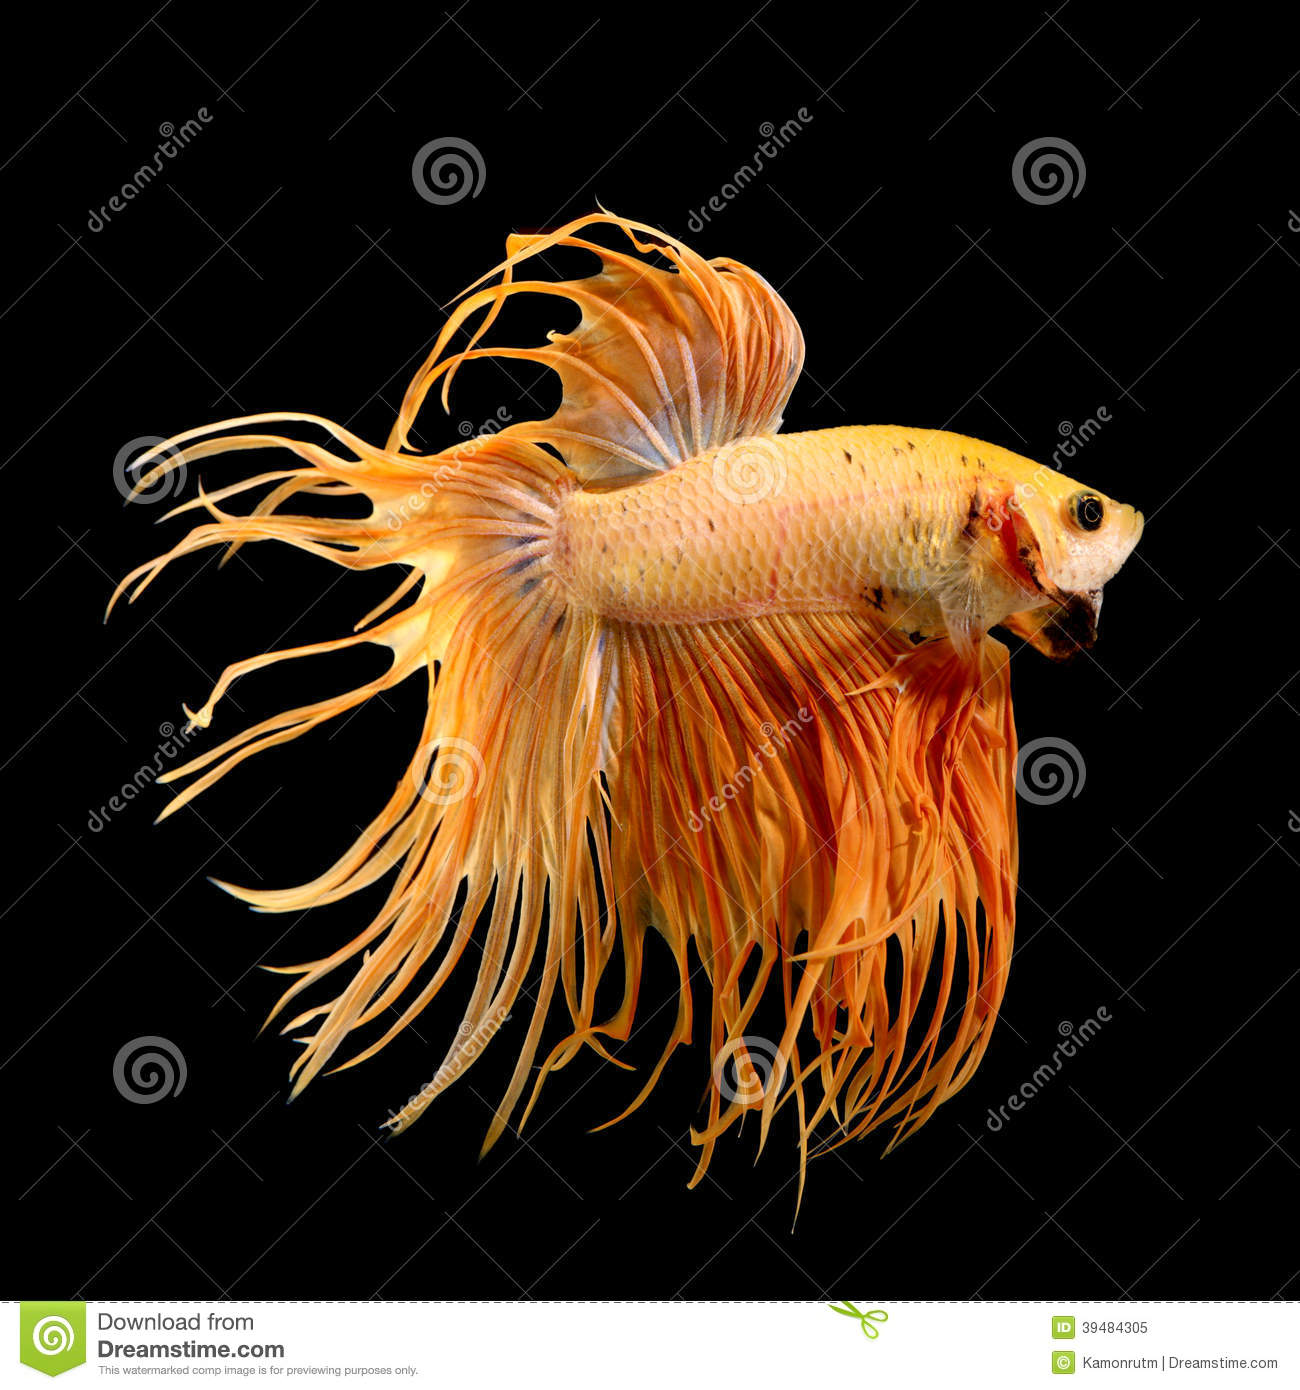 fighter fish hd images free download